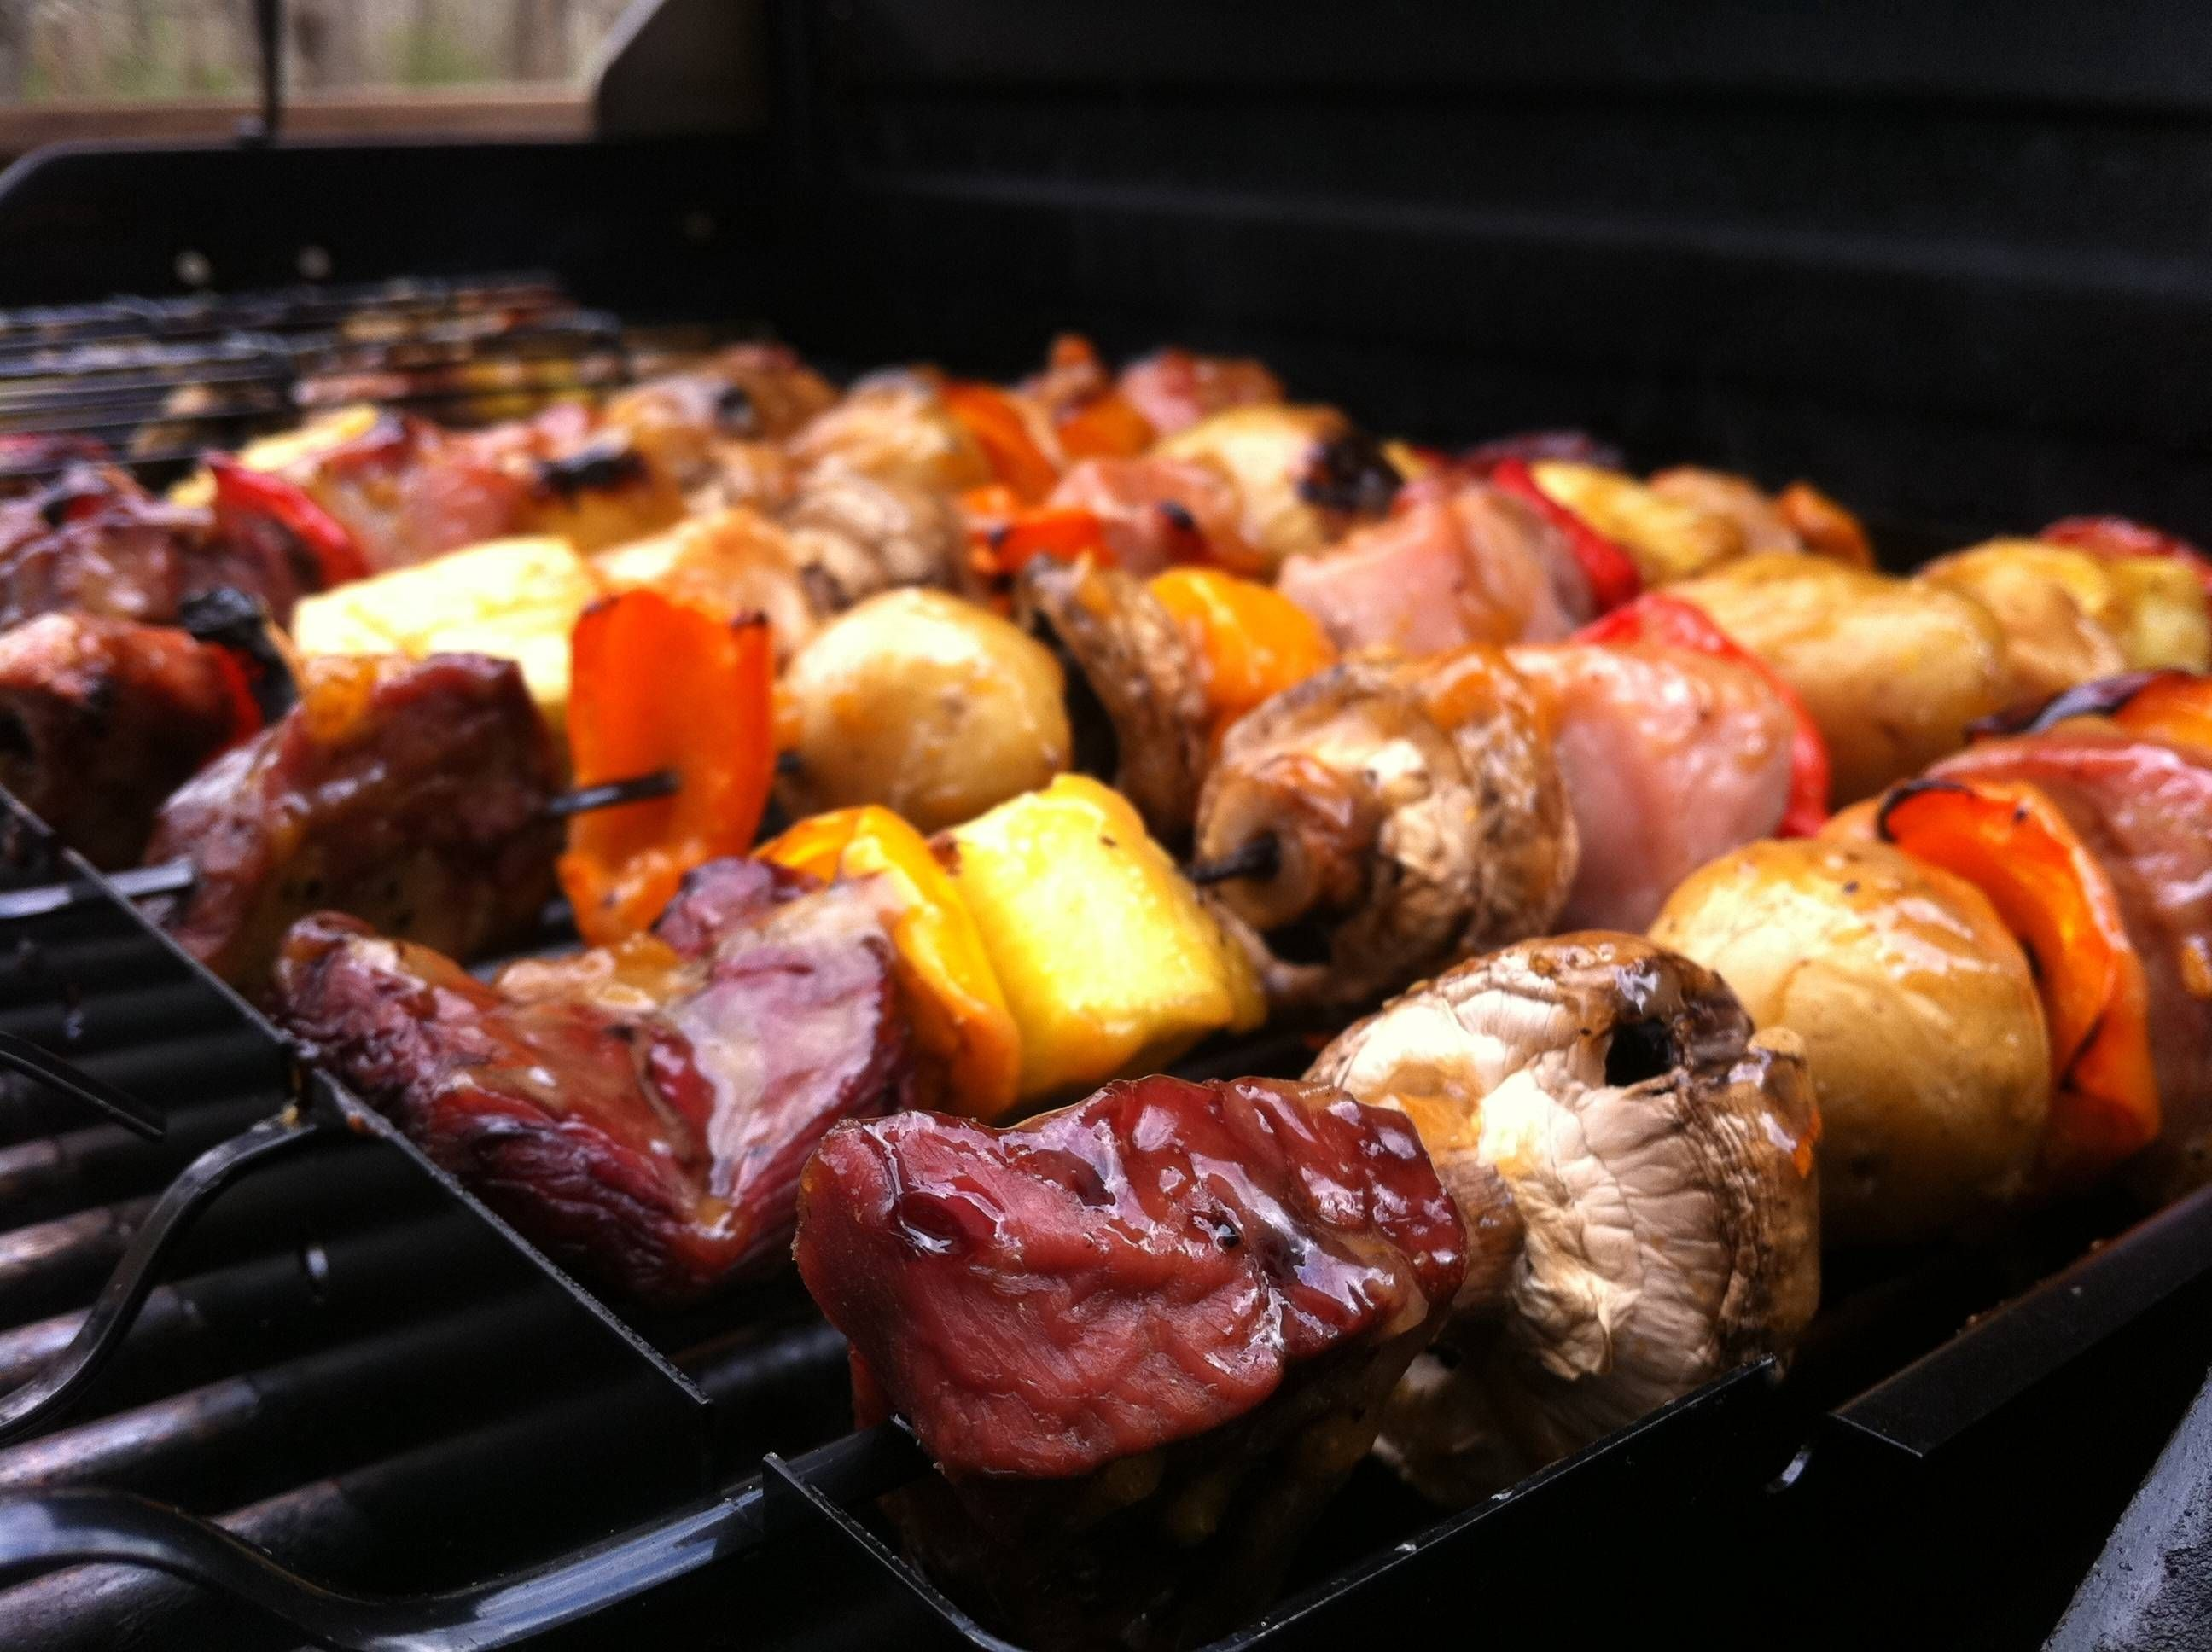 Food on a stick! Veggies and meat go very well together on a hot grill. #lunch #barbecue #meat #grill